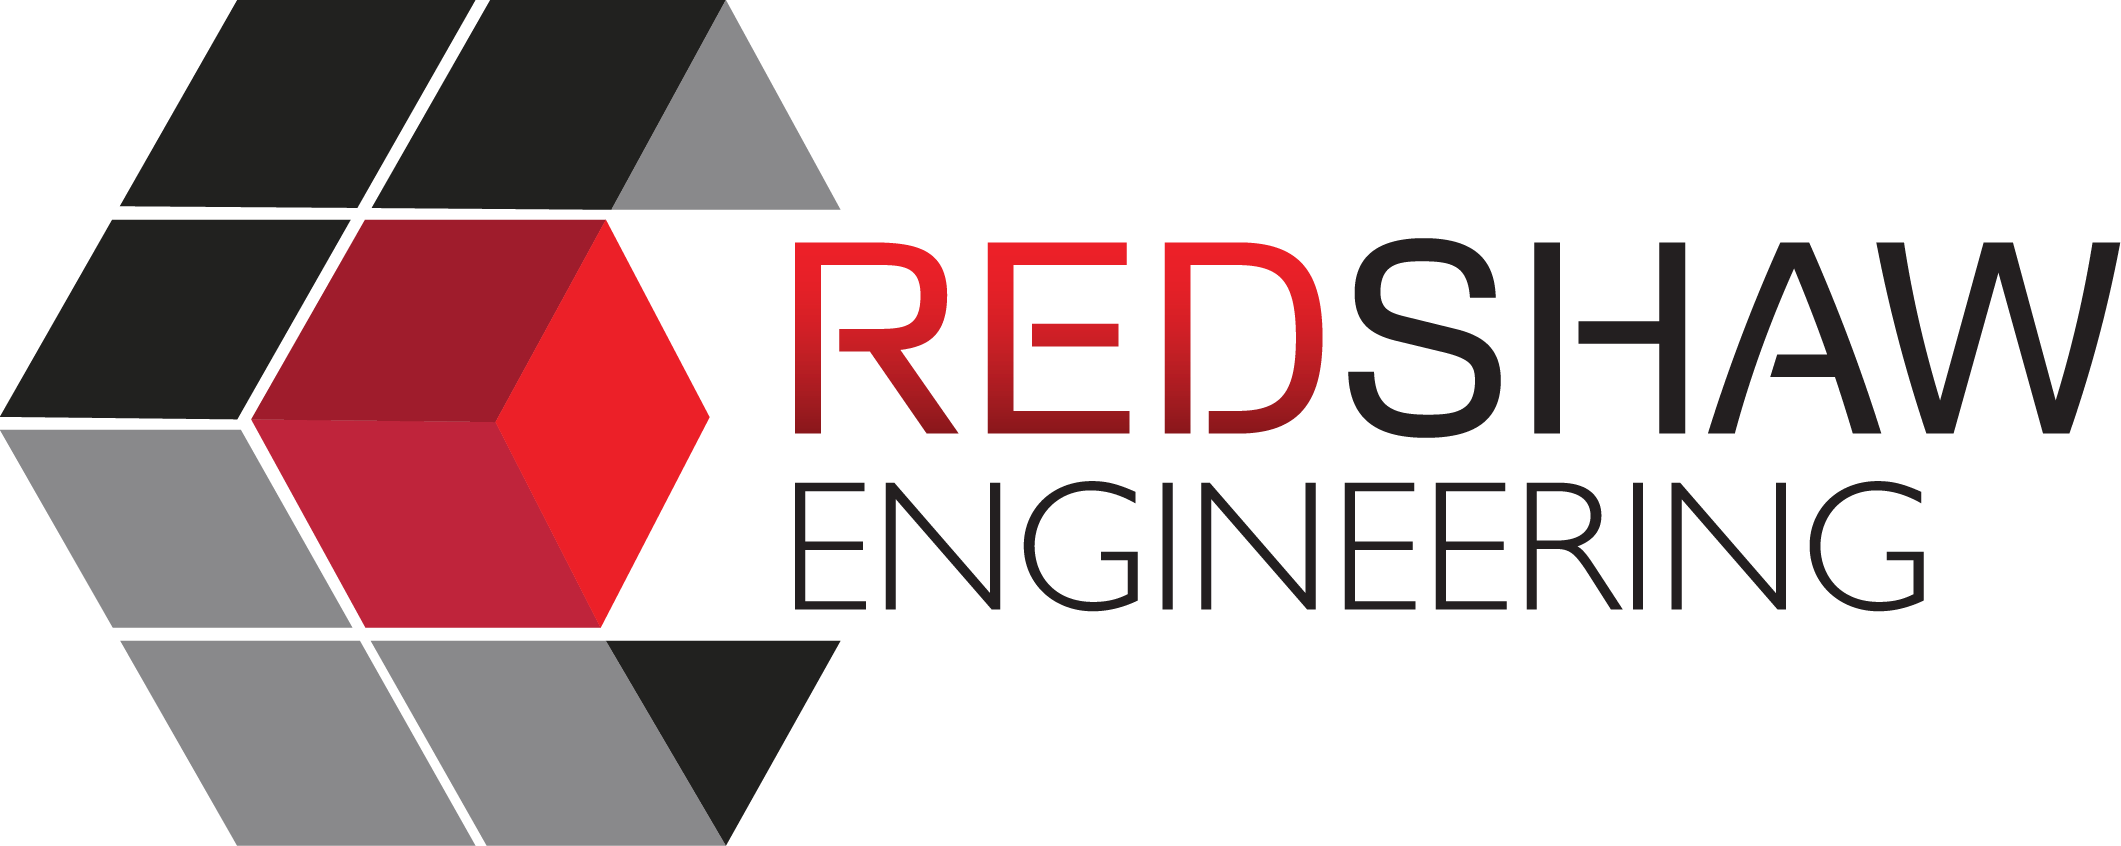 Redshaw Engineering Logo_Rev0